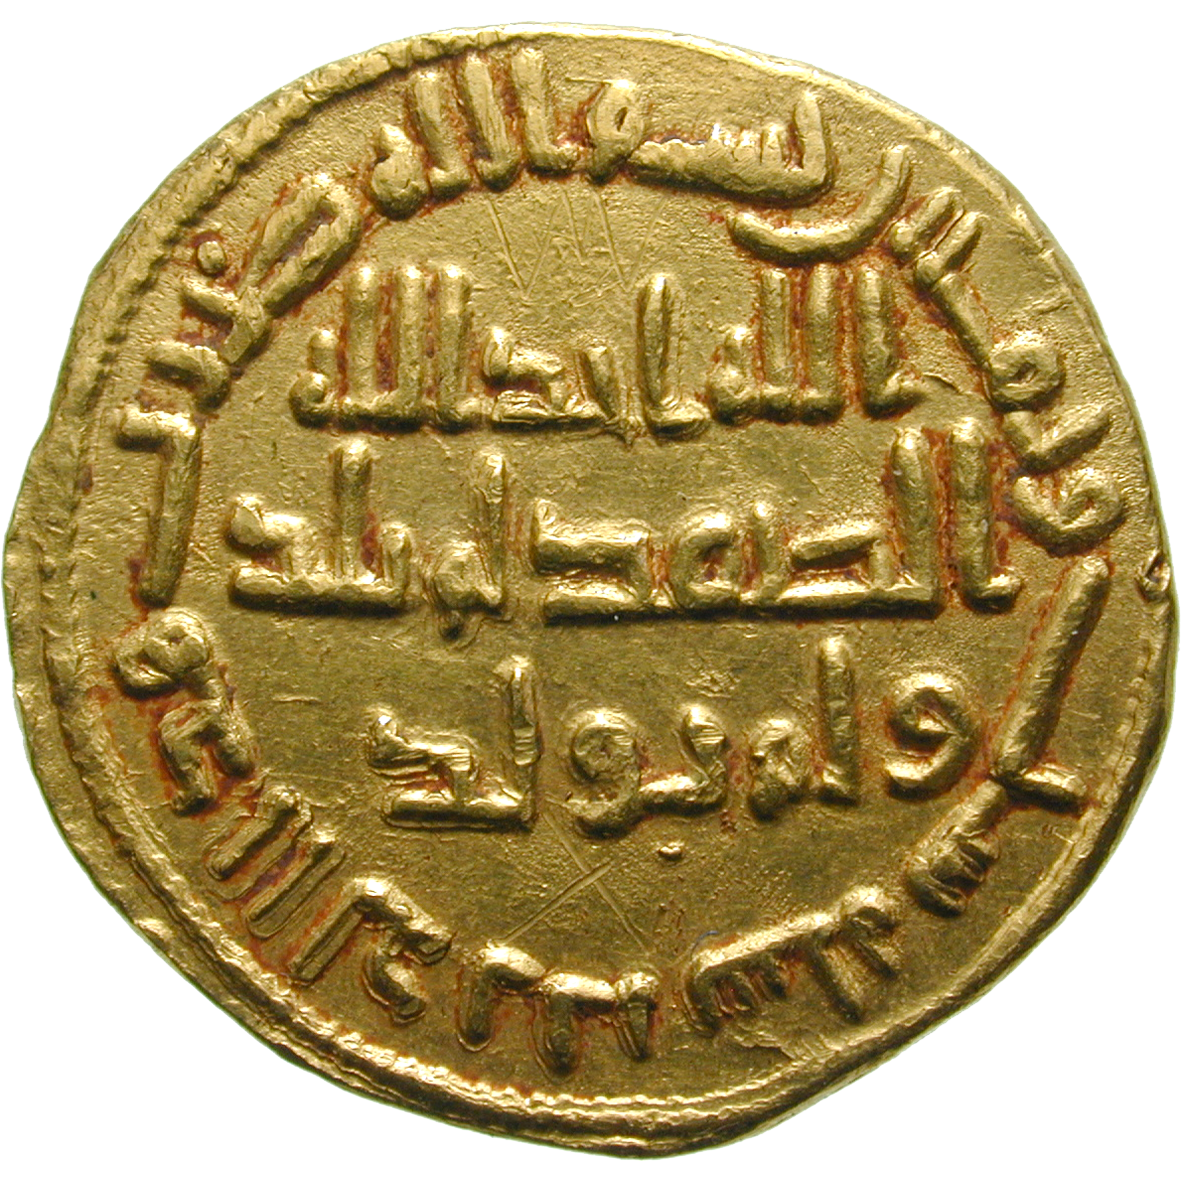 caliphate of abd al malik Hisham ibn 'abd al-malik was the tenth caliph of the umayyads, the first hereditary dynasty of islamborn in 691/72 ah in damascus, hisham was the fourth son of 'abd al-malik ibn marwan to reign, after al-walid, sulayman and yazidhe reigned for nearly twenty years, from 724/105 ah to 743/125 ah.